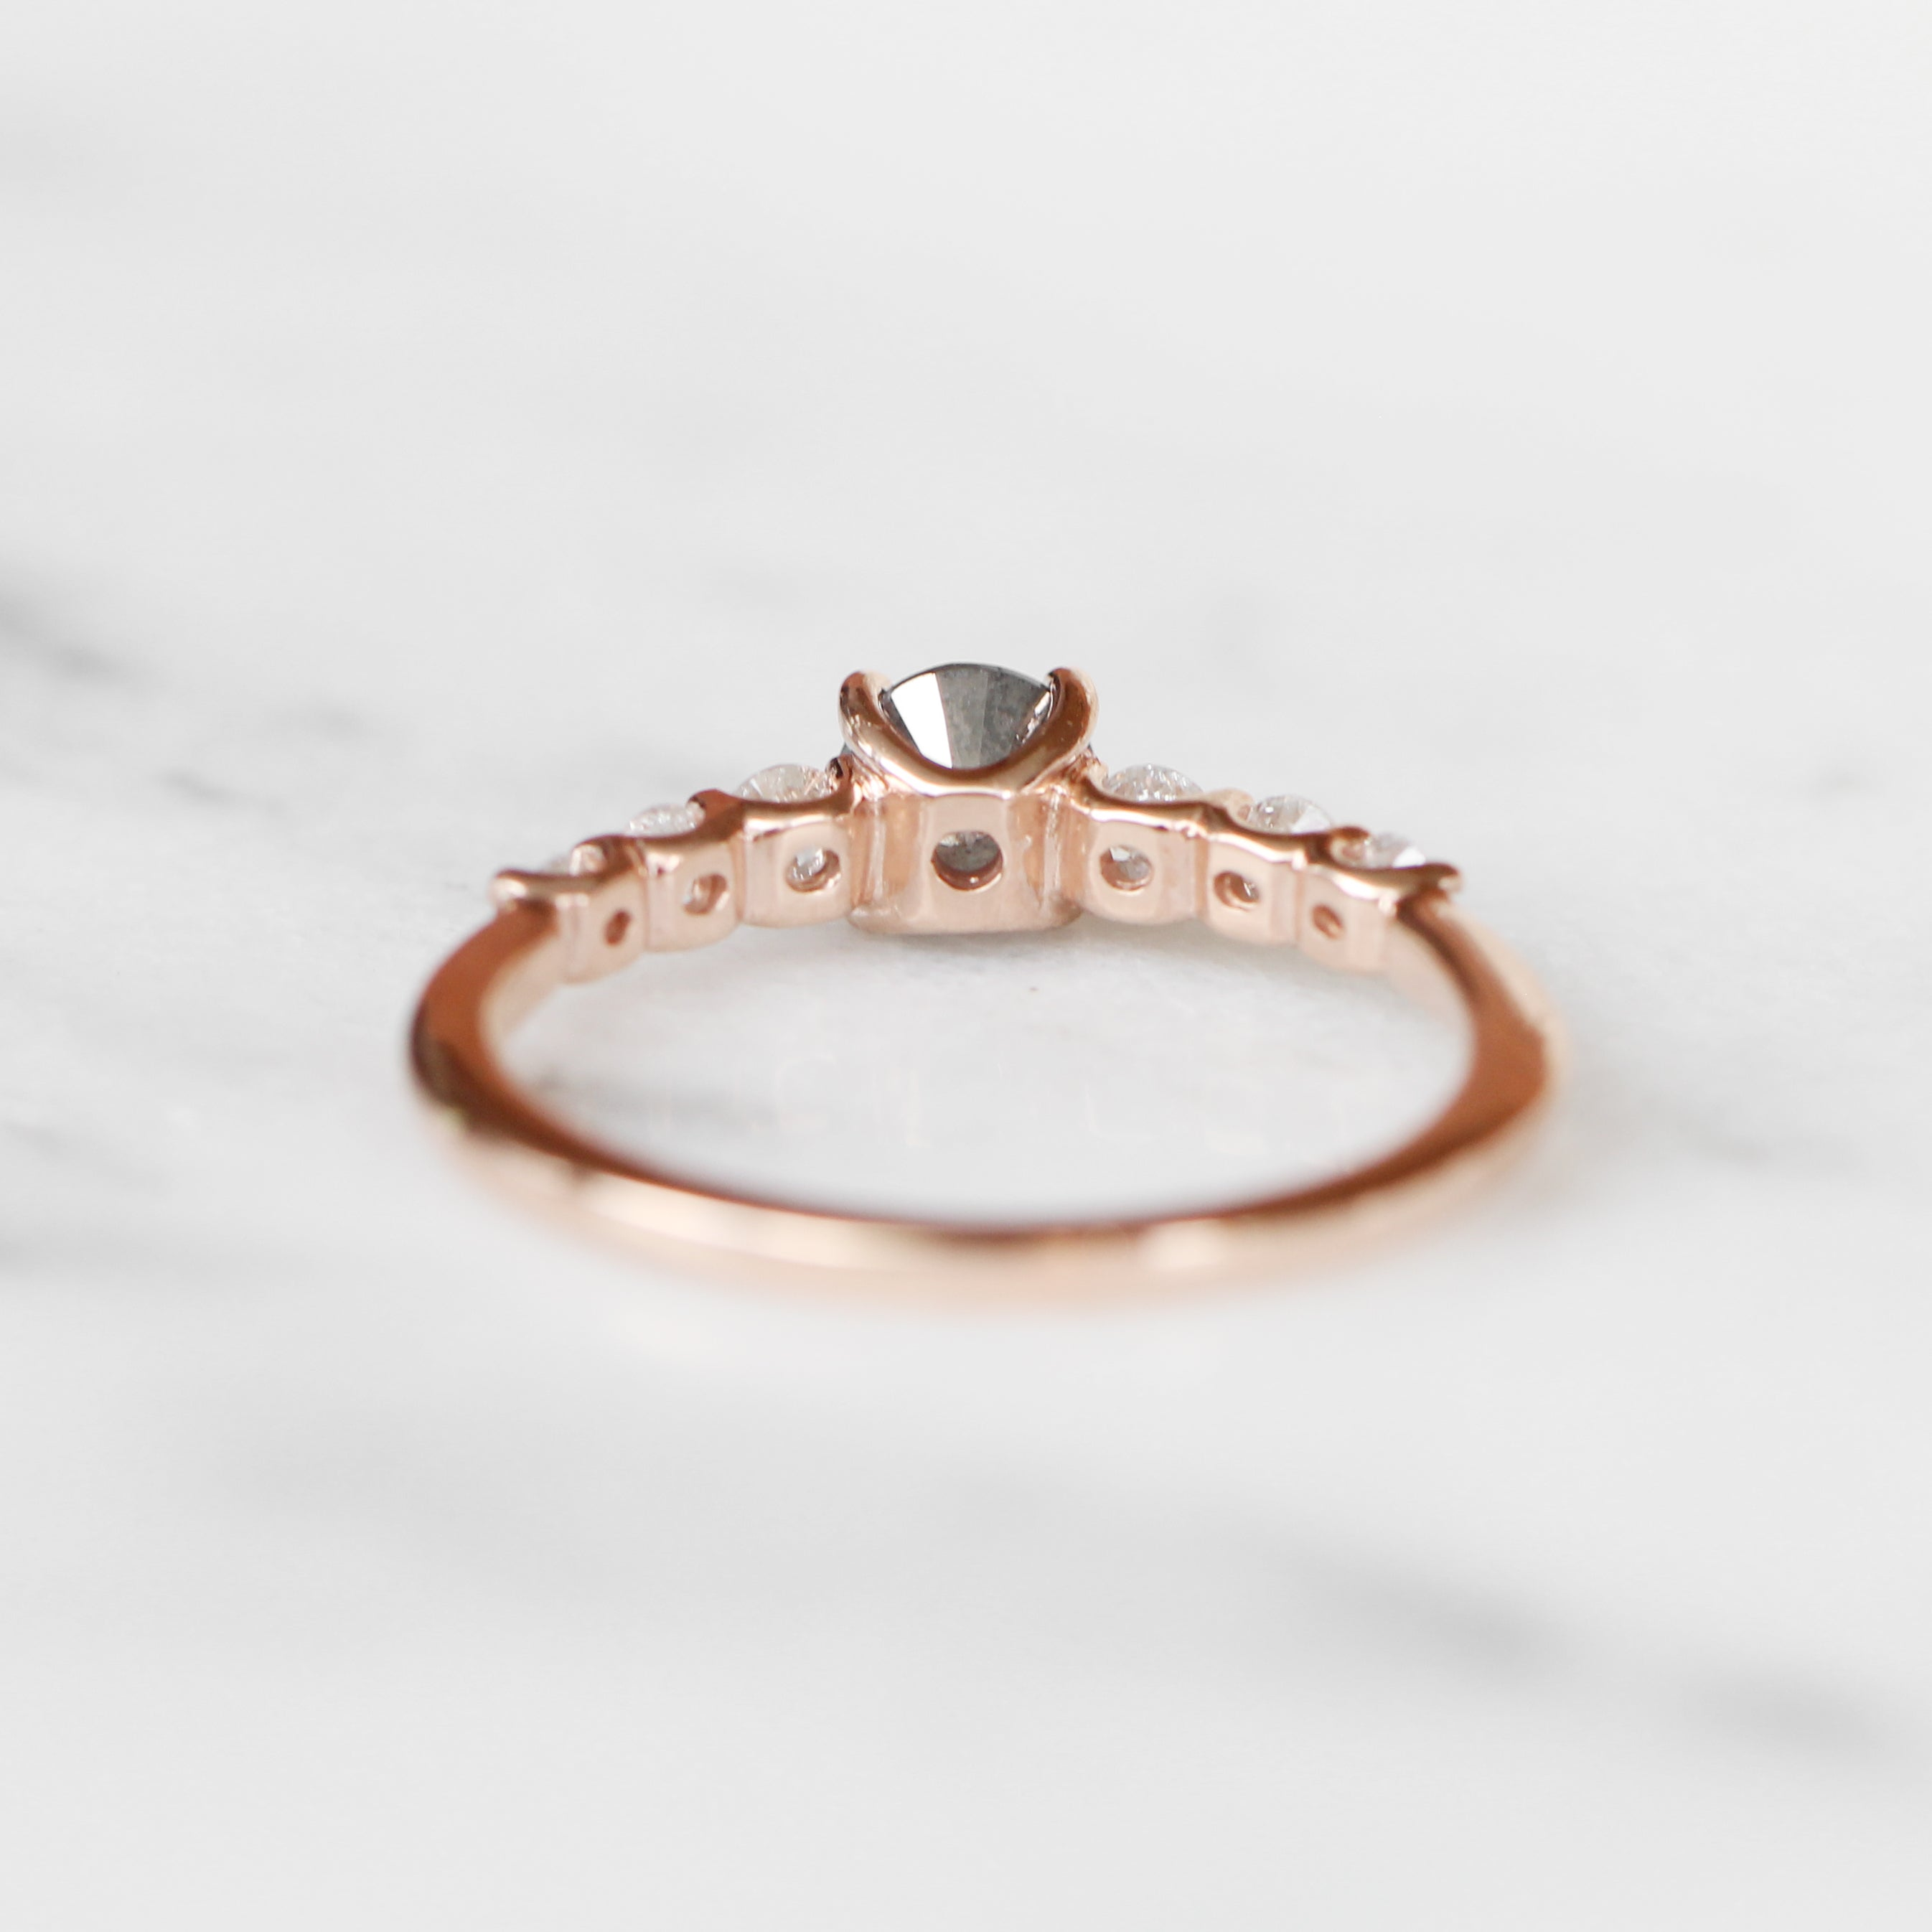 Nina ring with .56 carat round celestial diamond and diamonds in 10k rose gold - ready to size and ship - Celestial Diamonds ® by Midwinter Co.